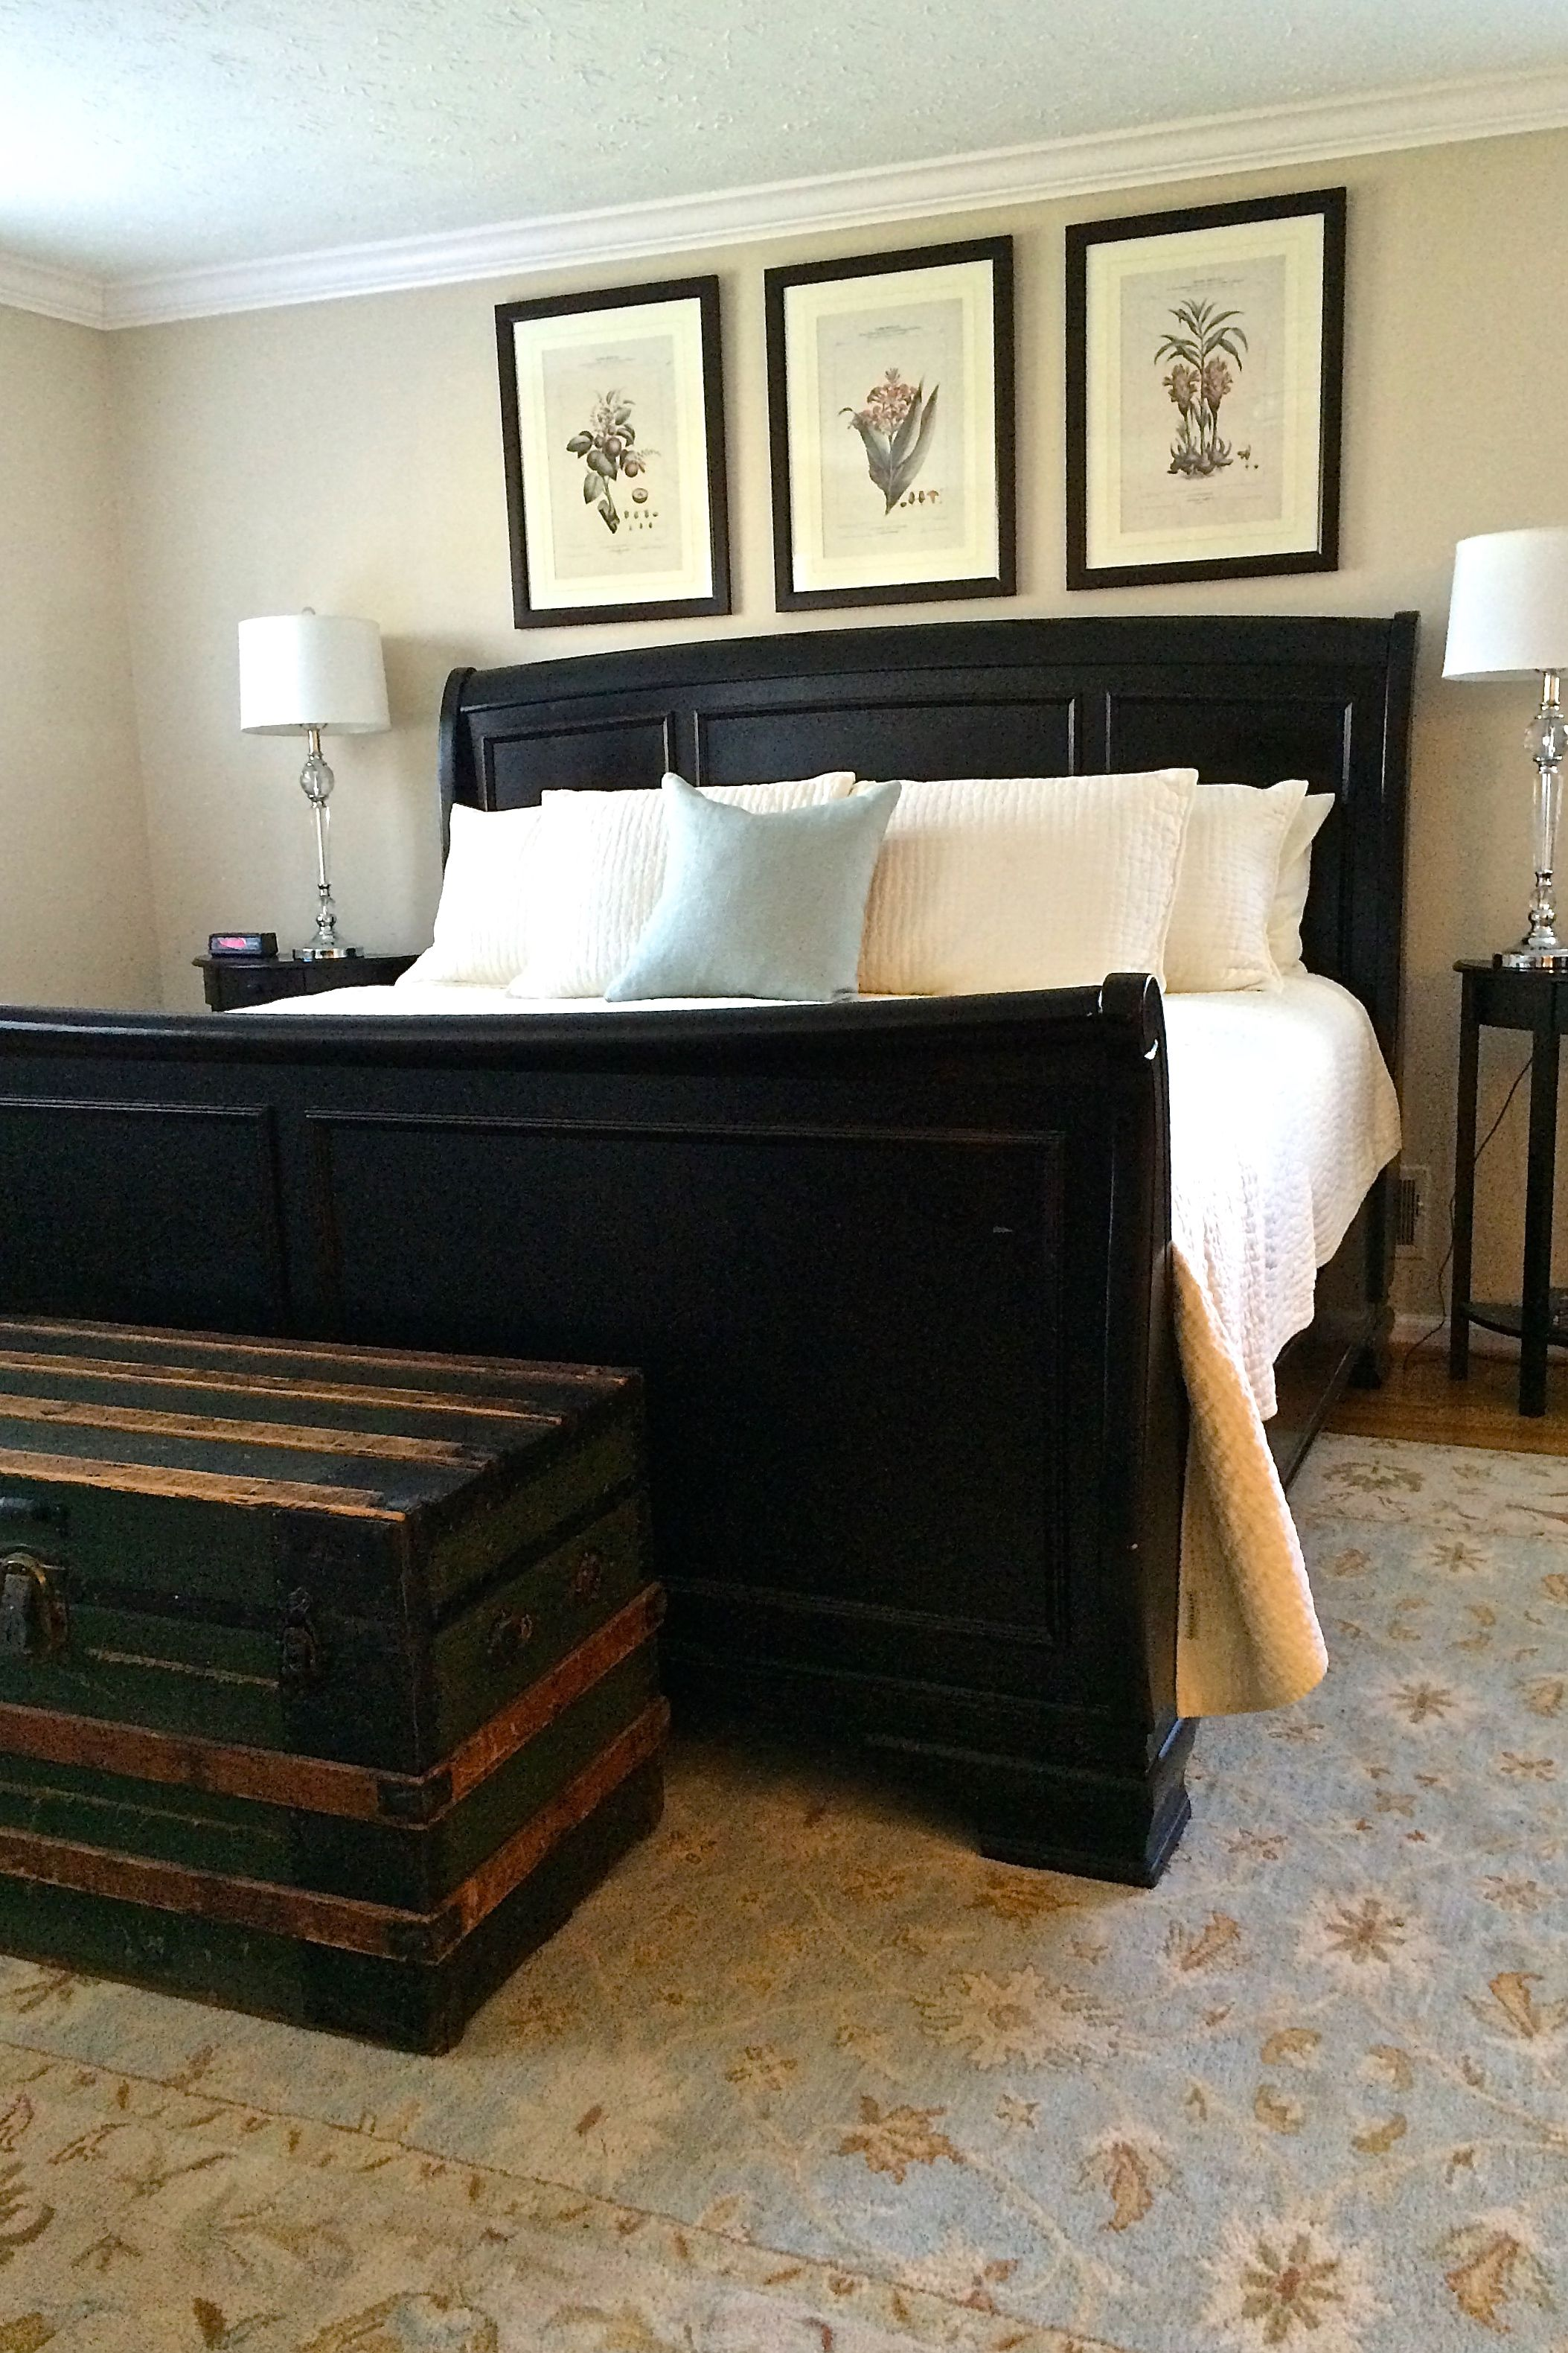 Master Bedroom with a jet black sleigh bed from Pottery